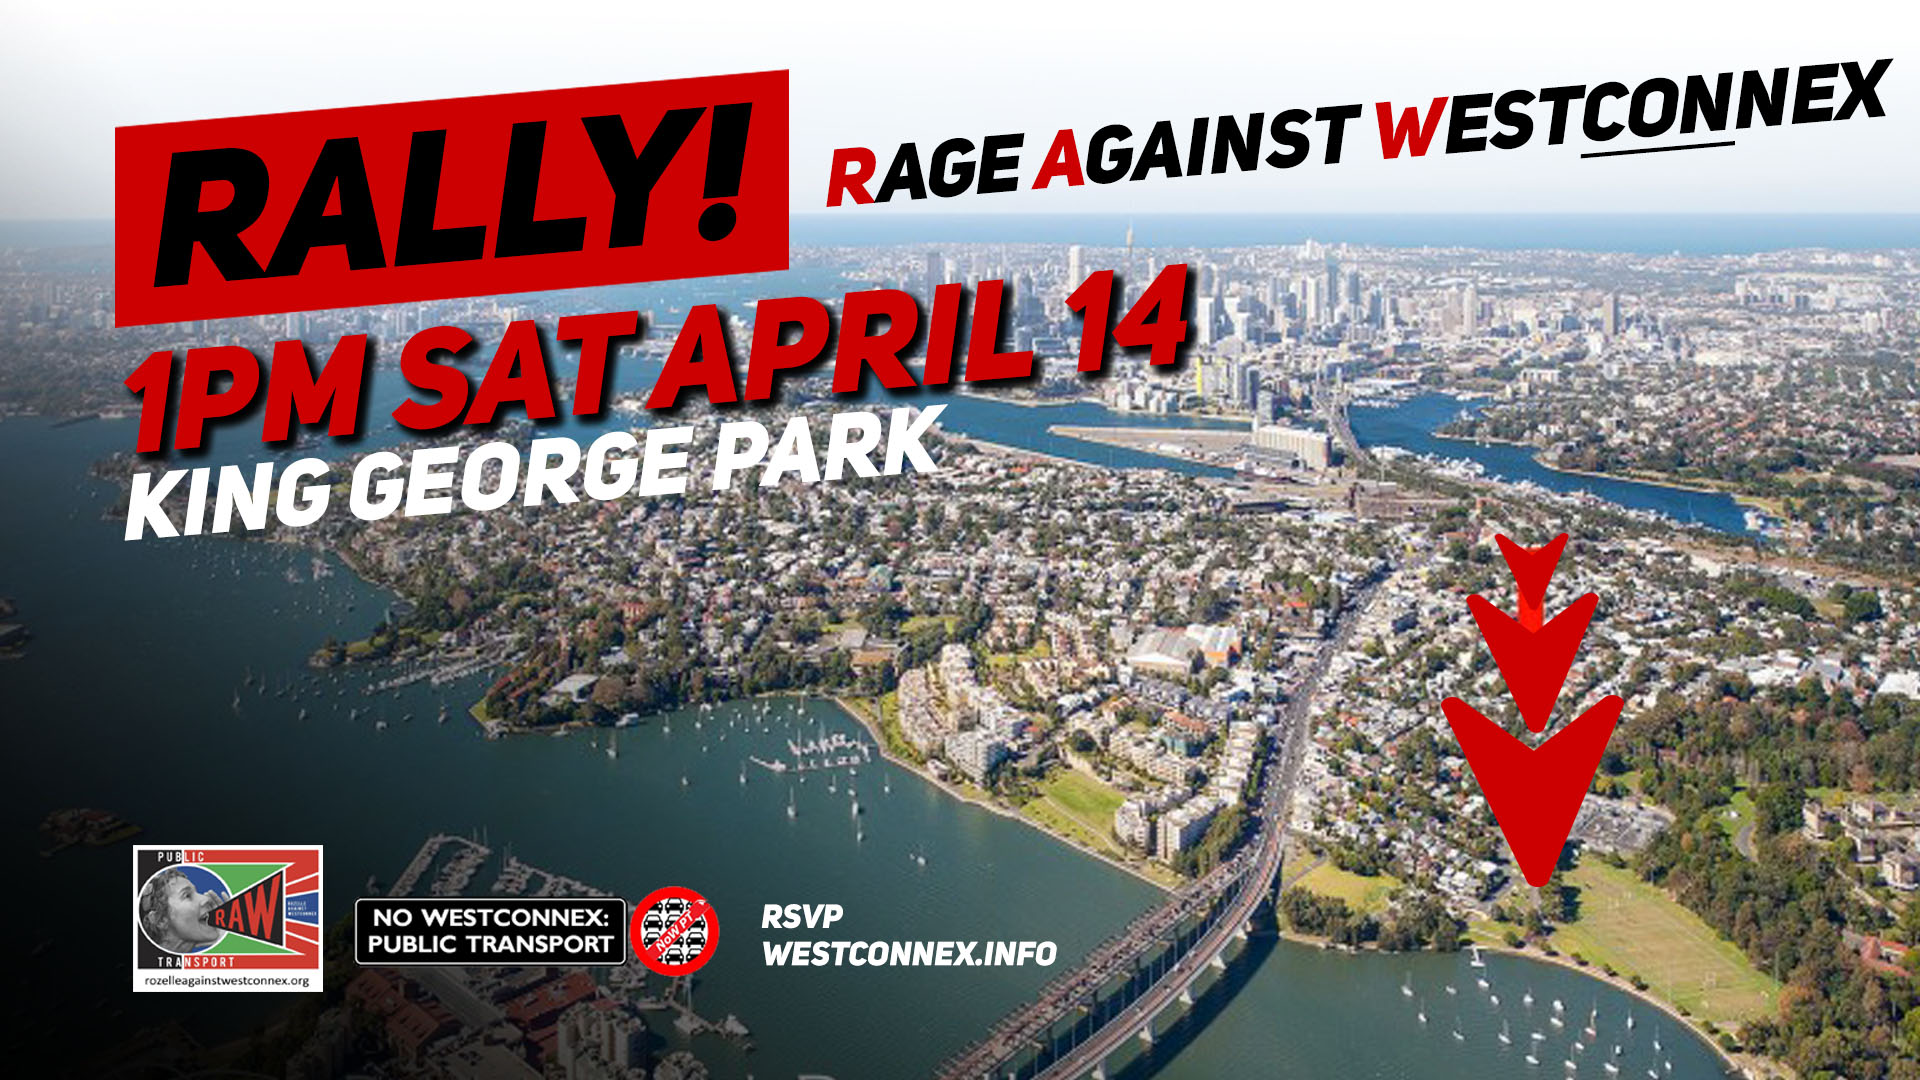 facebook-event-RAW-rally